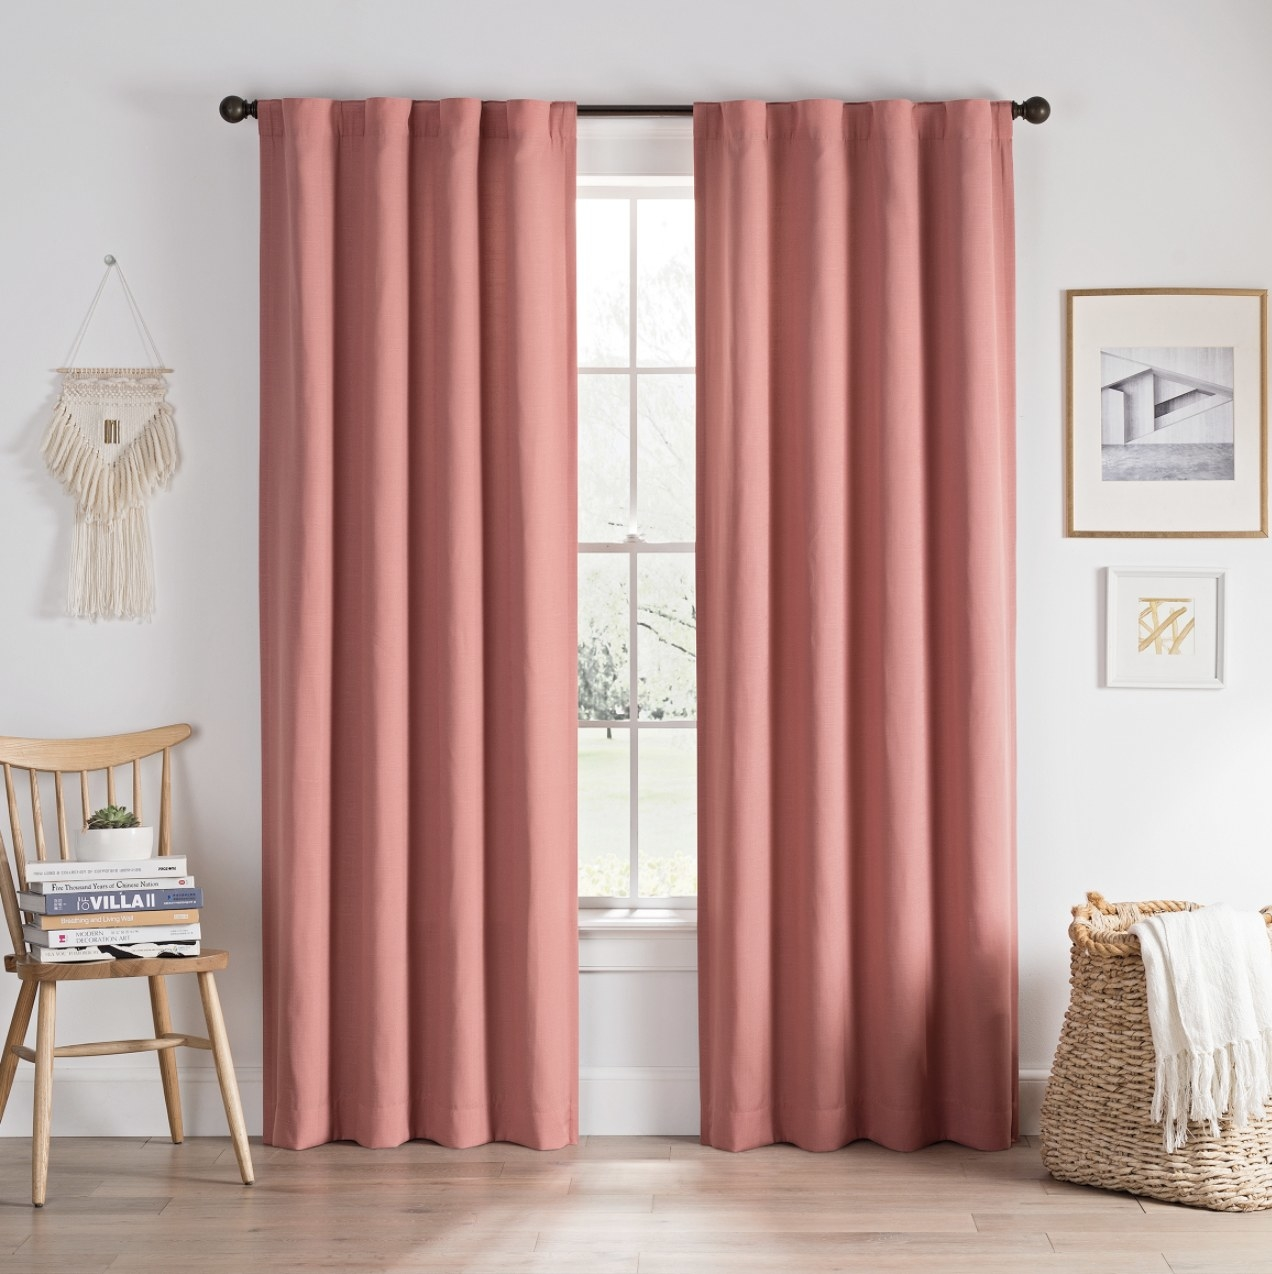 The coral curtains hanging